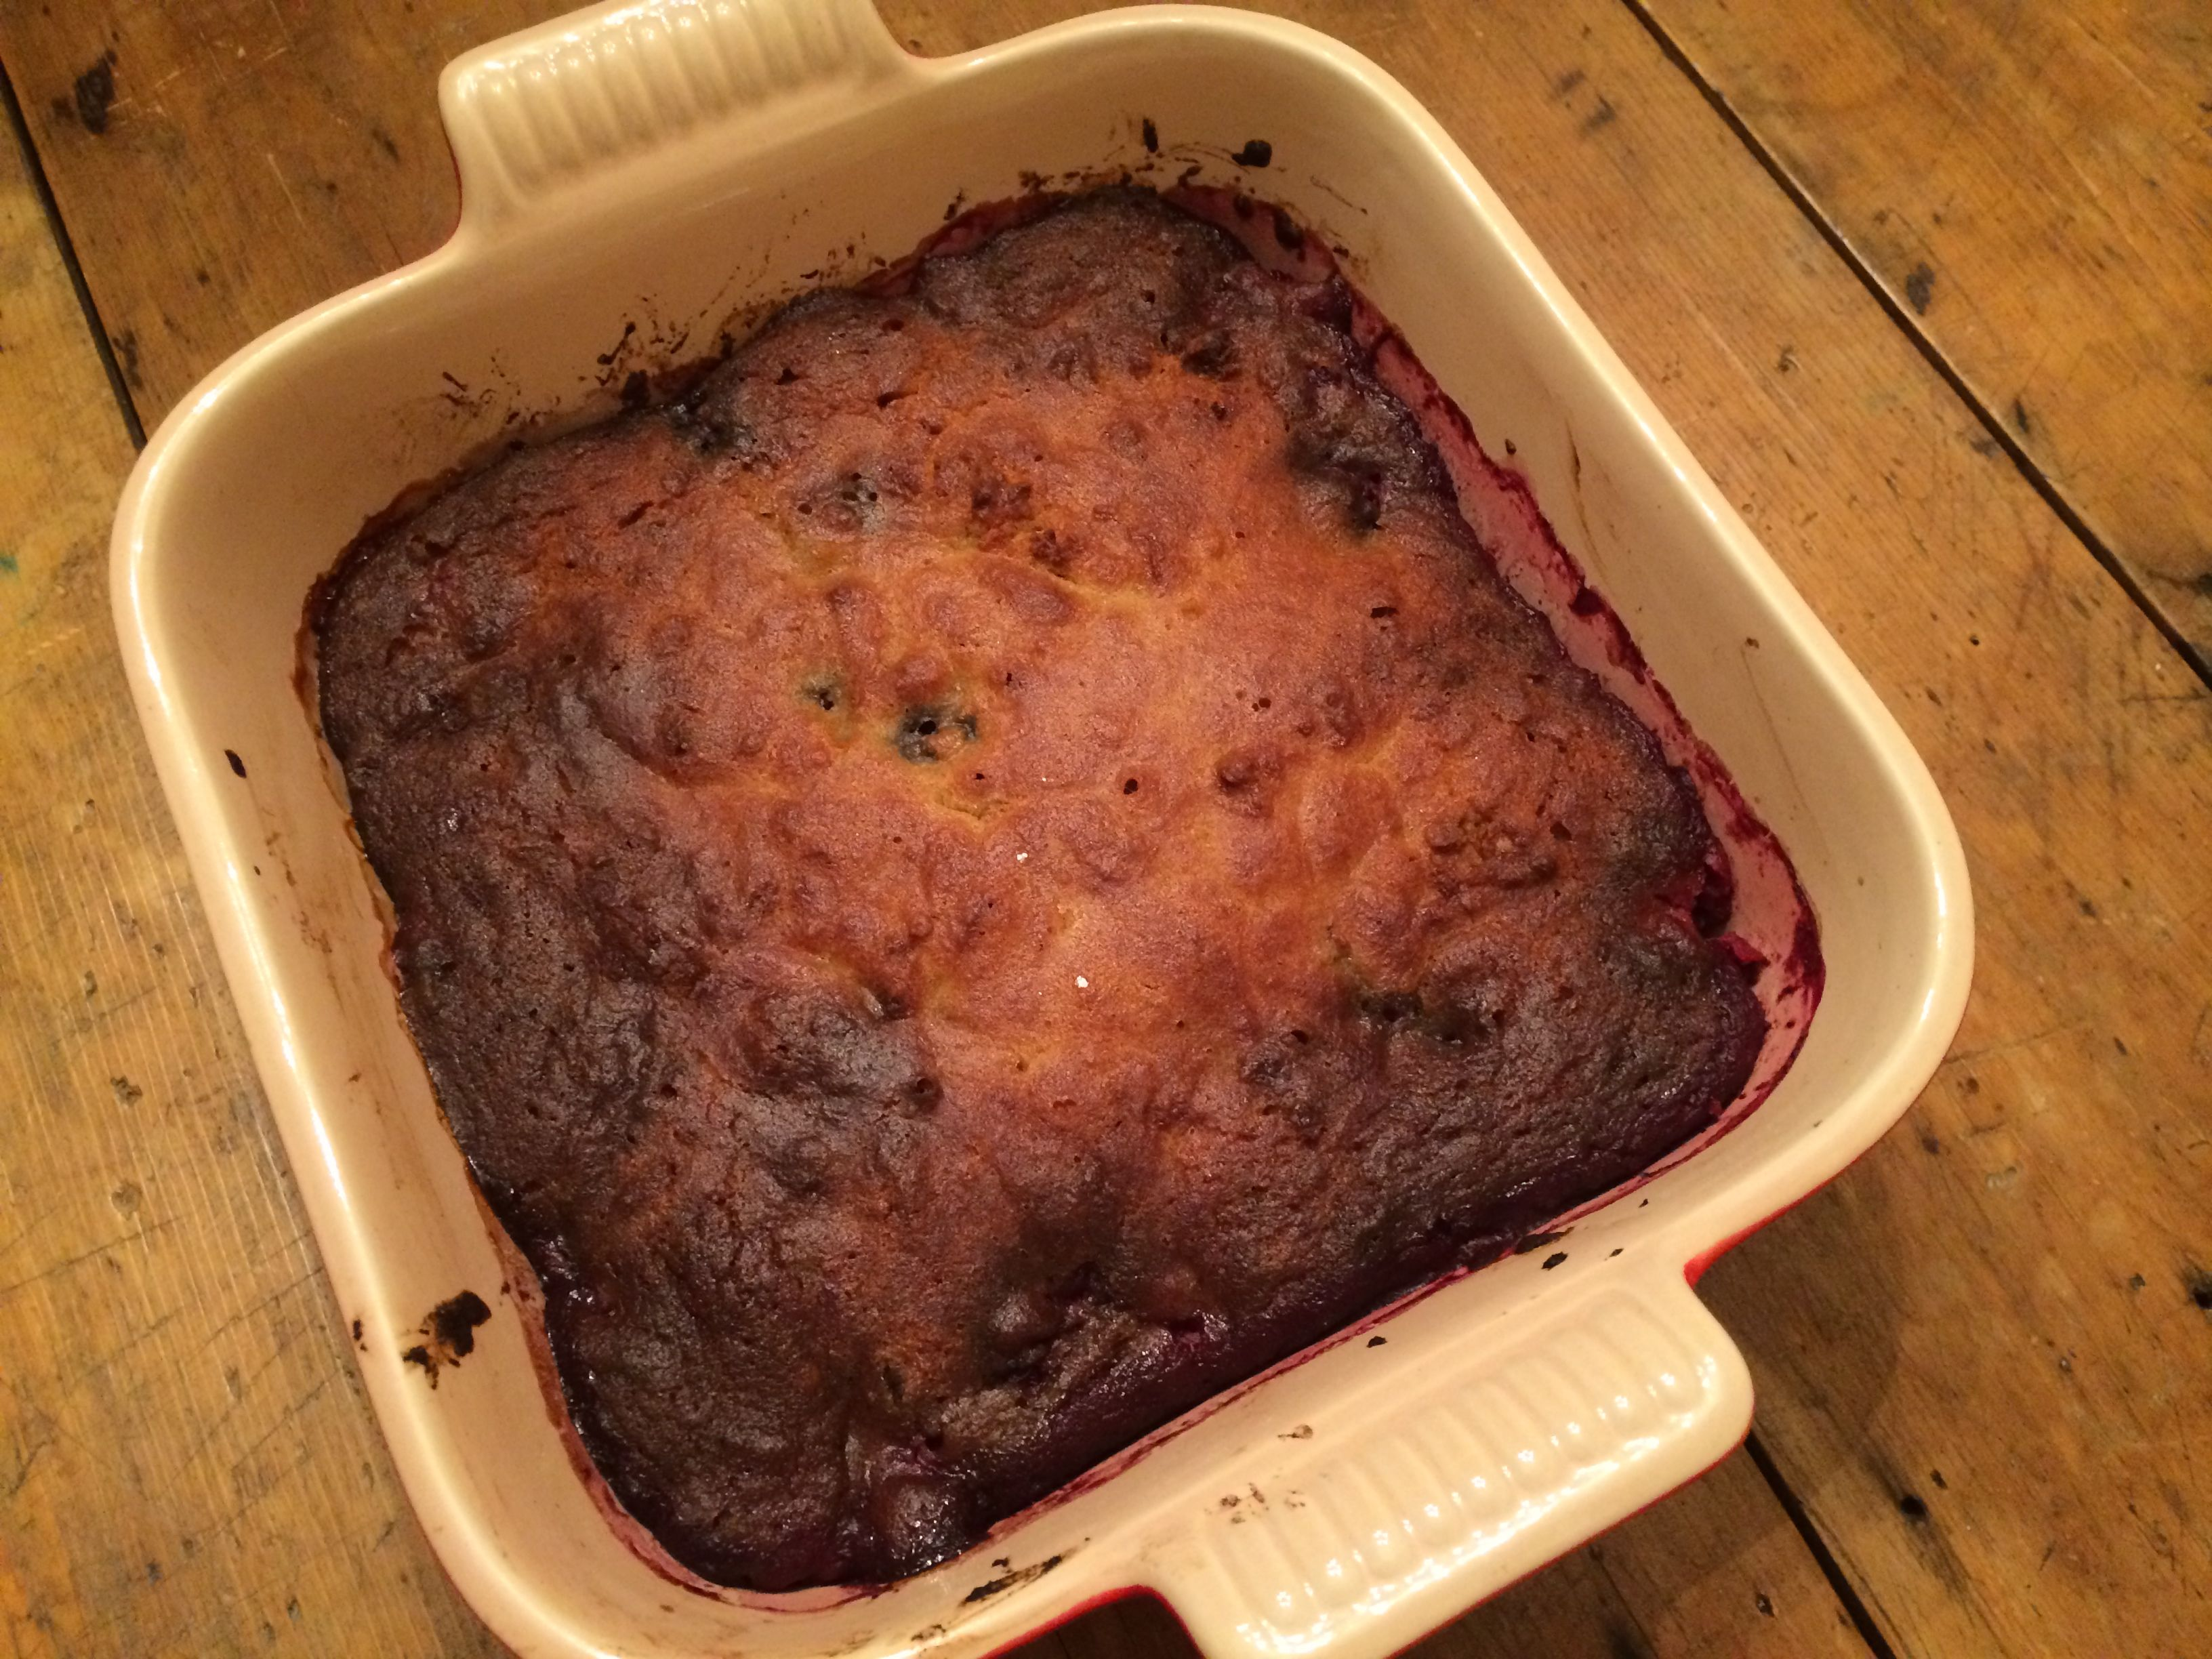 NE_Blackberry Cobbler_Just baked